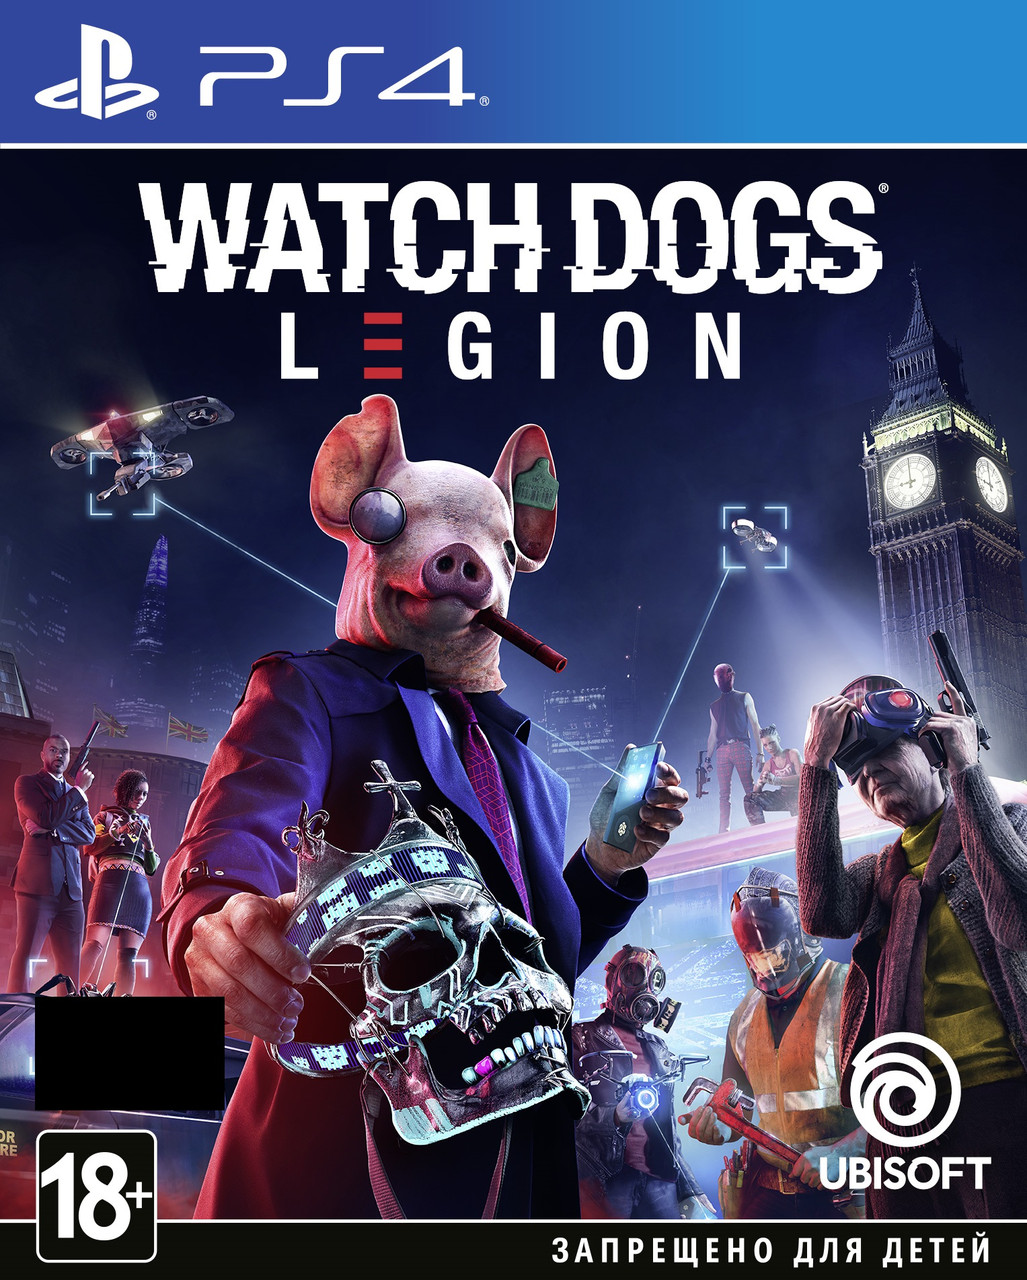 Watch Dogs Legion [Blu-Ray диск] (PlayStation) - 29.10.2020 Предзаказ